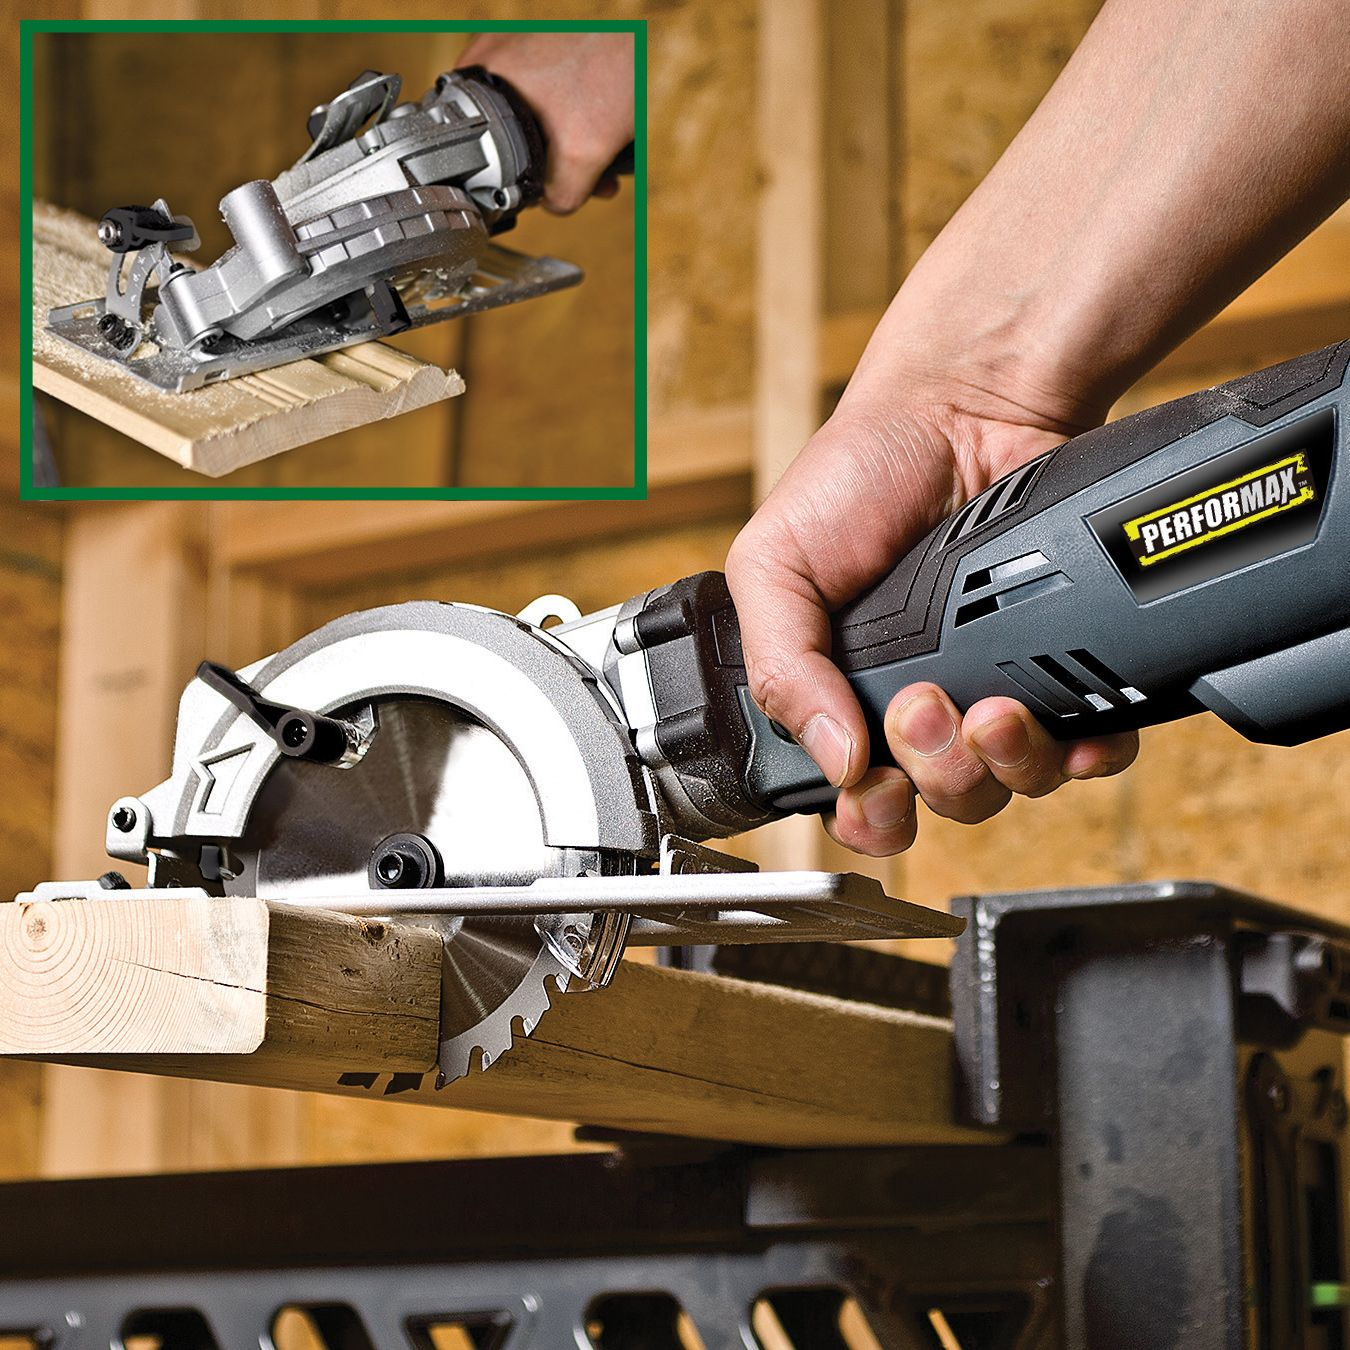 This Performax Compact Circular Saw S Compact Size Is Excellent For Maneuverability Portability And Con Holzschnitzerei Werkzeuge Holzschnitzerei Schnitzerei